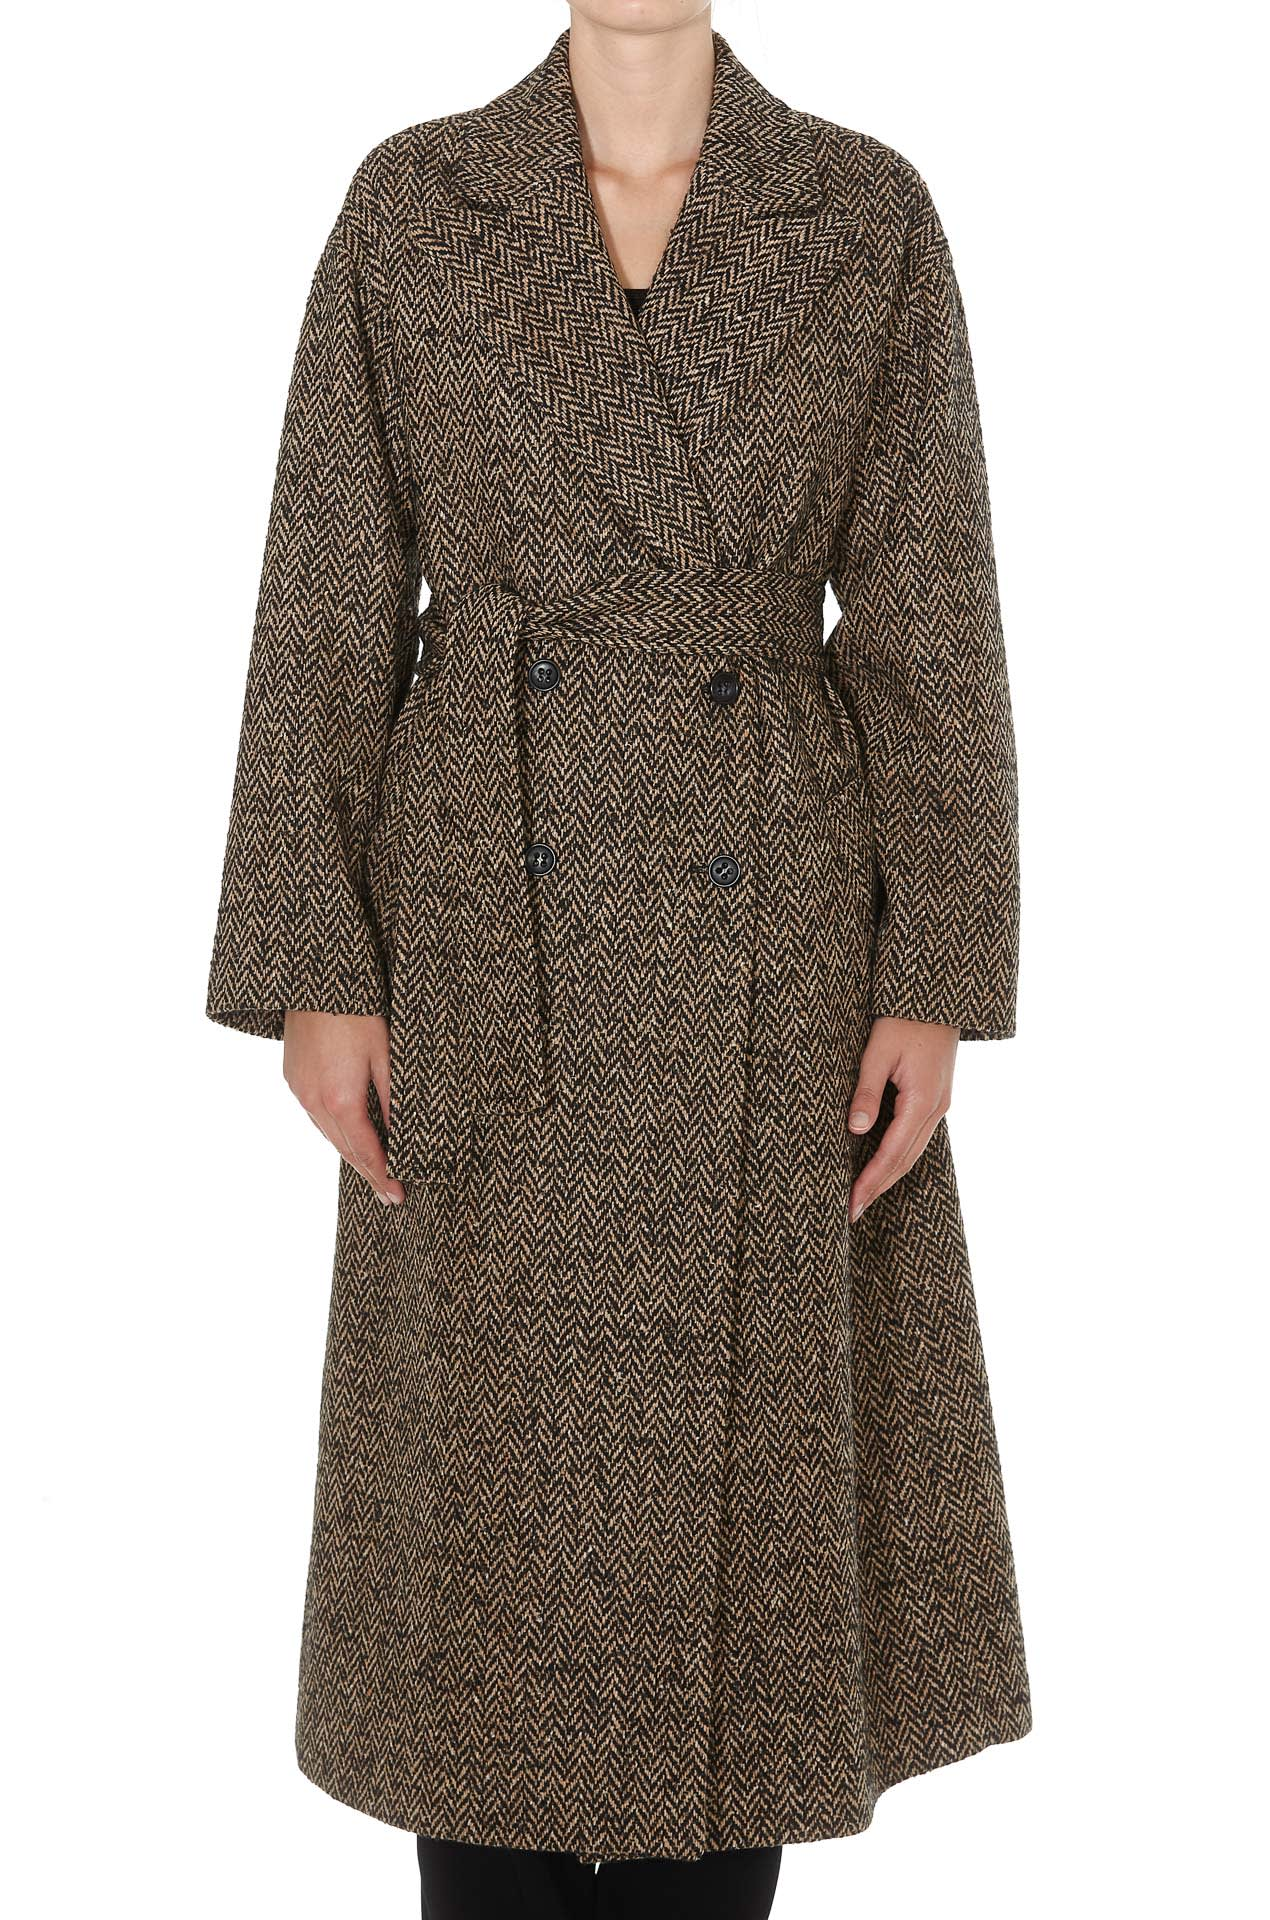 Red Valentino Coat With Belt